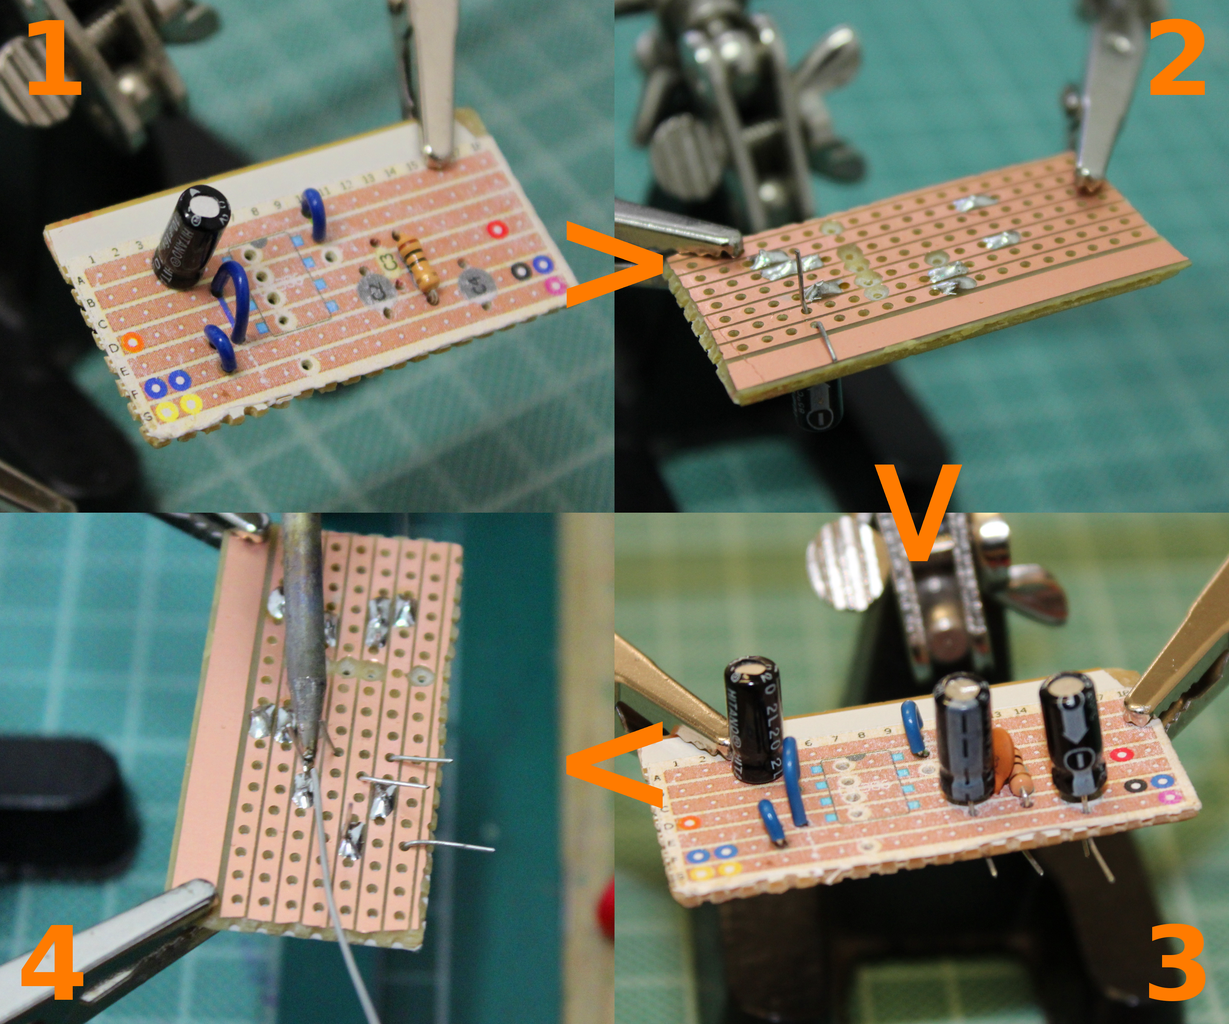 LET'S INSERT THE CAPACITORS